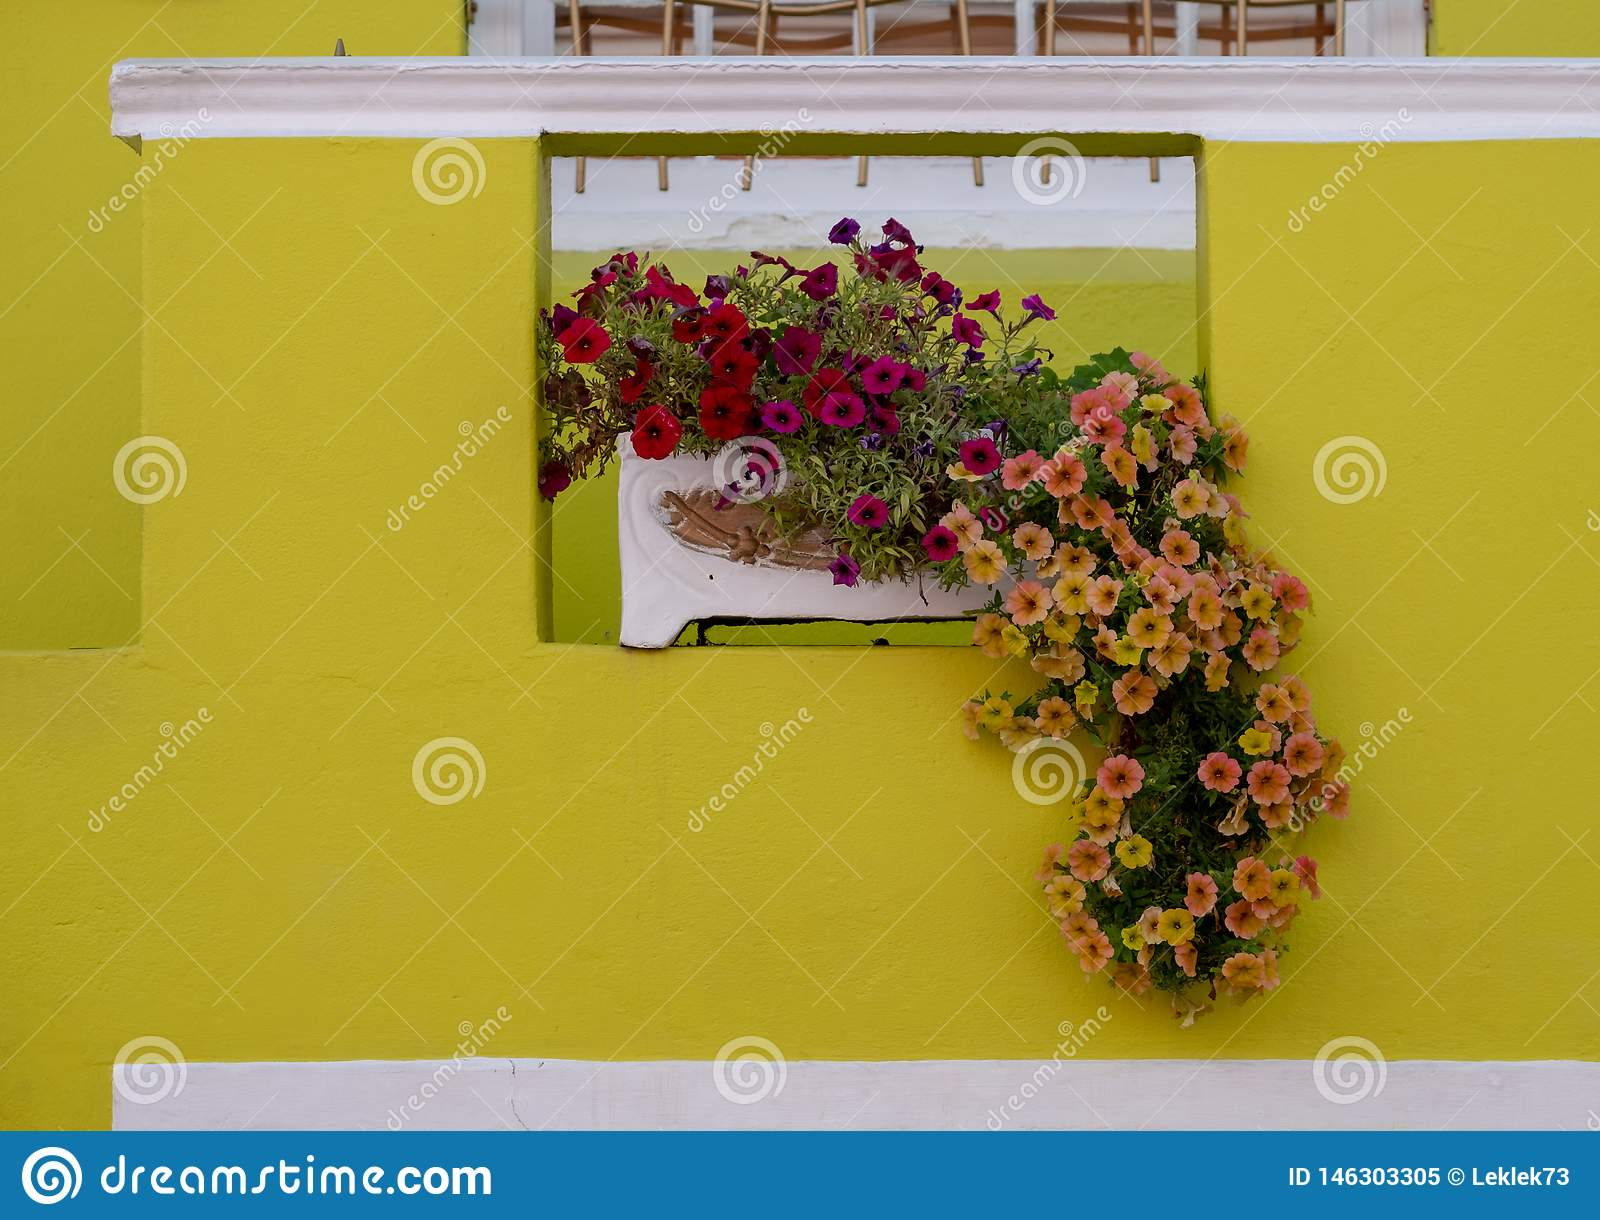 Detailed photo of house with flowers outside in the Malay Quarter, Bo Kaap, Cape Town, South Africa